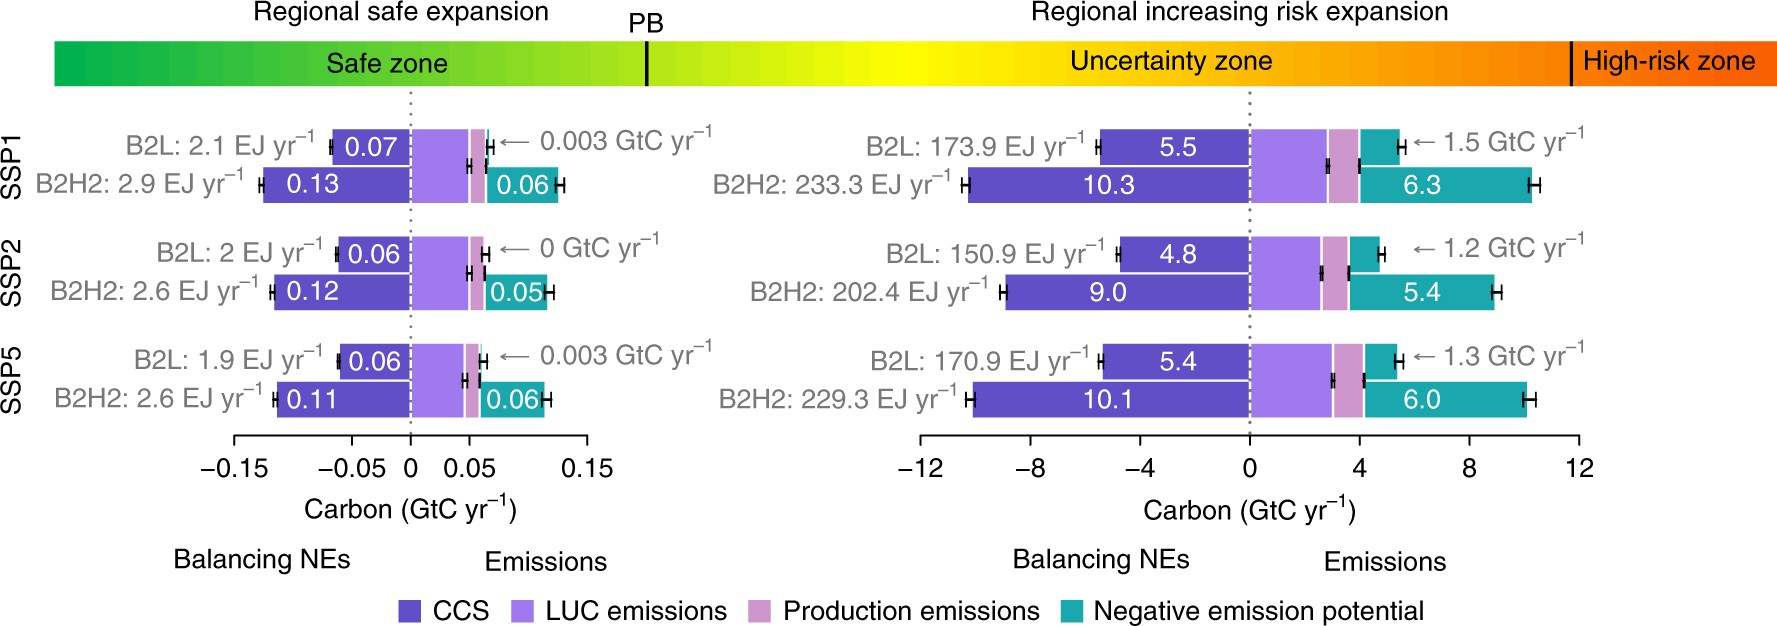 Muller Rost Wettolsheim concernant biomass-based negative emissions difficult to reconcile with